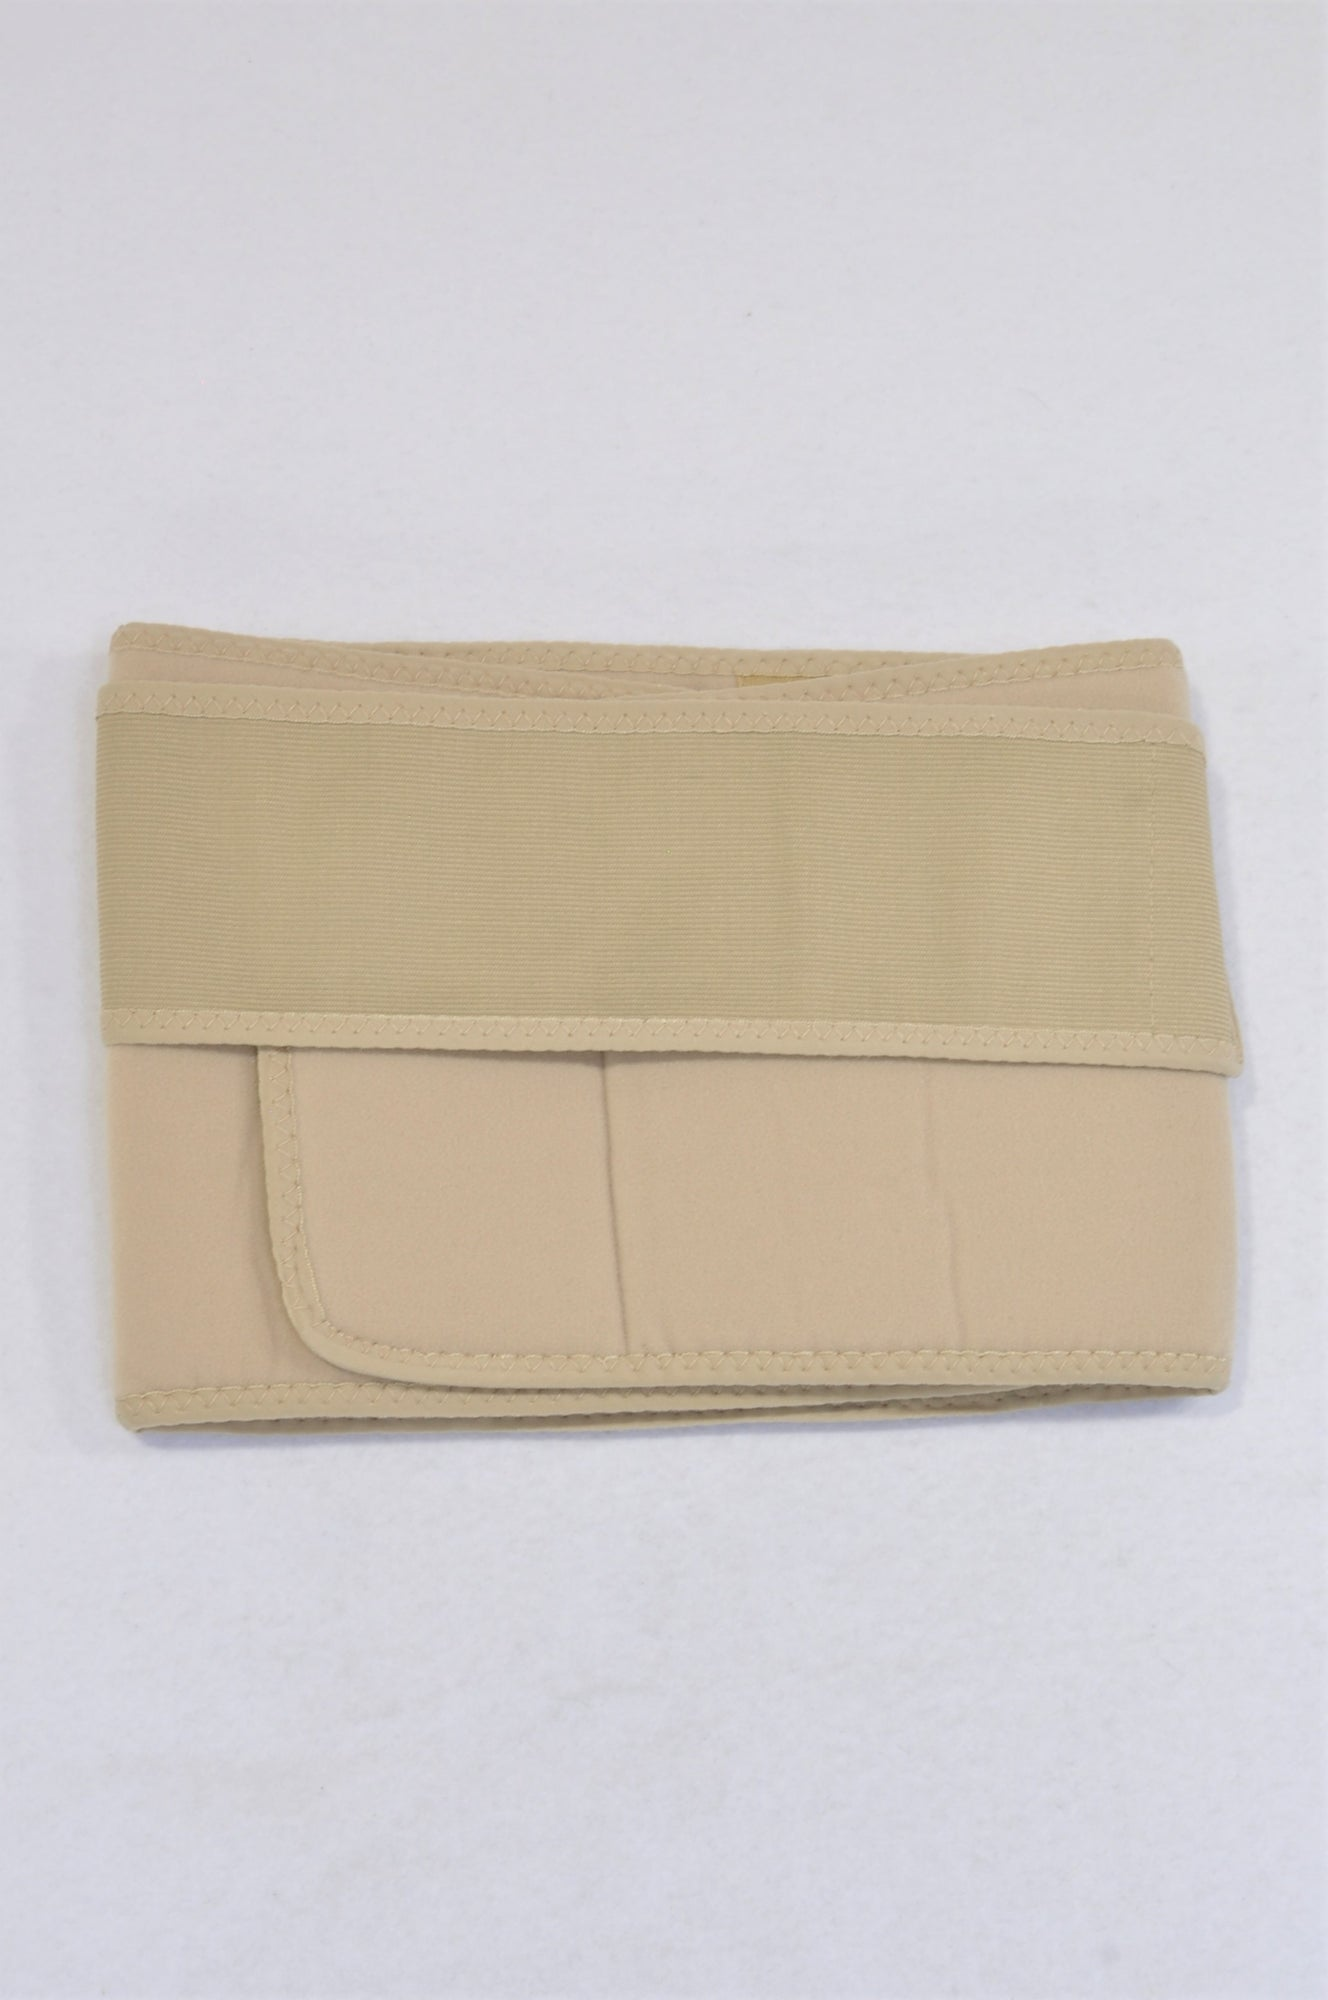 Unbranded Beige Support Belt Maternity Accessory Size S